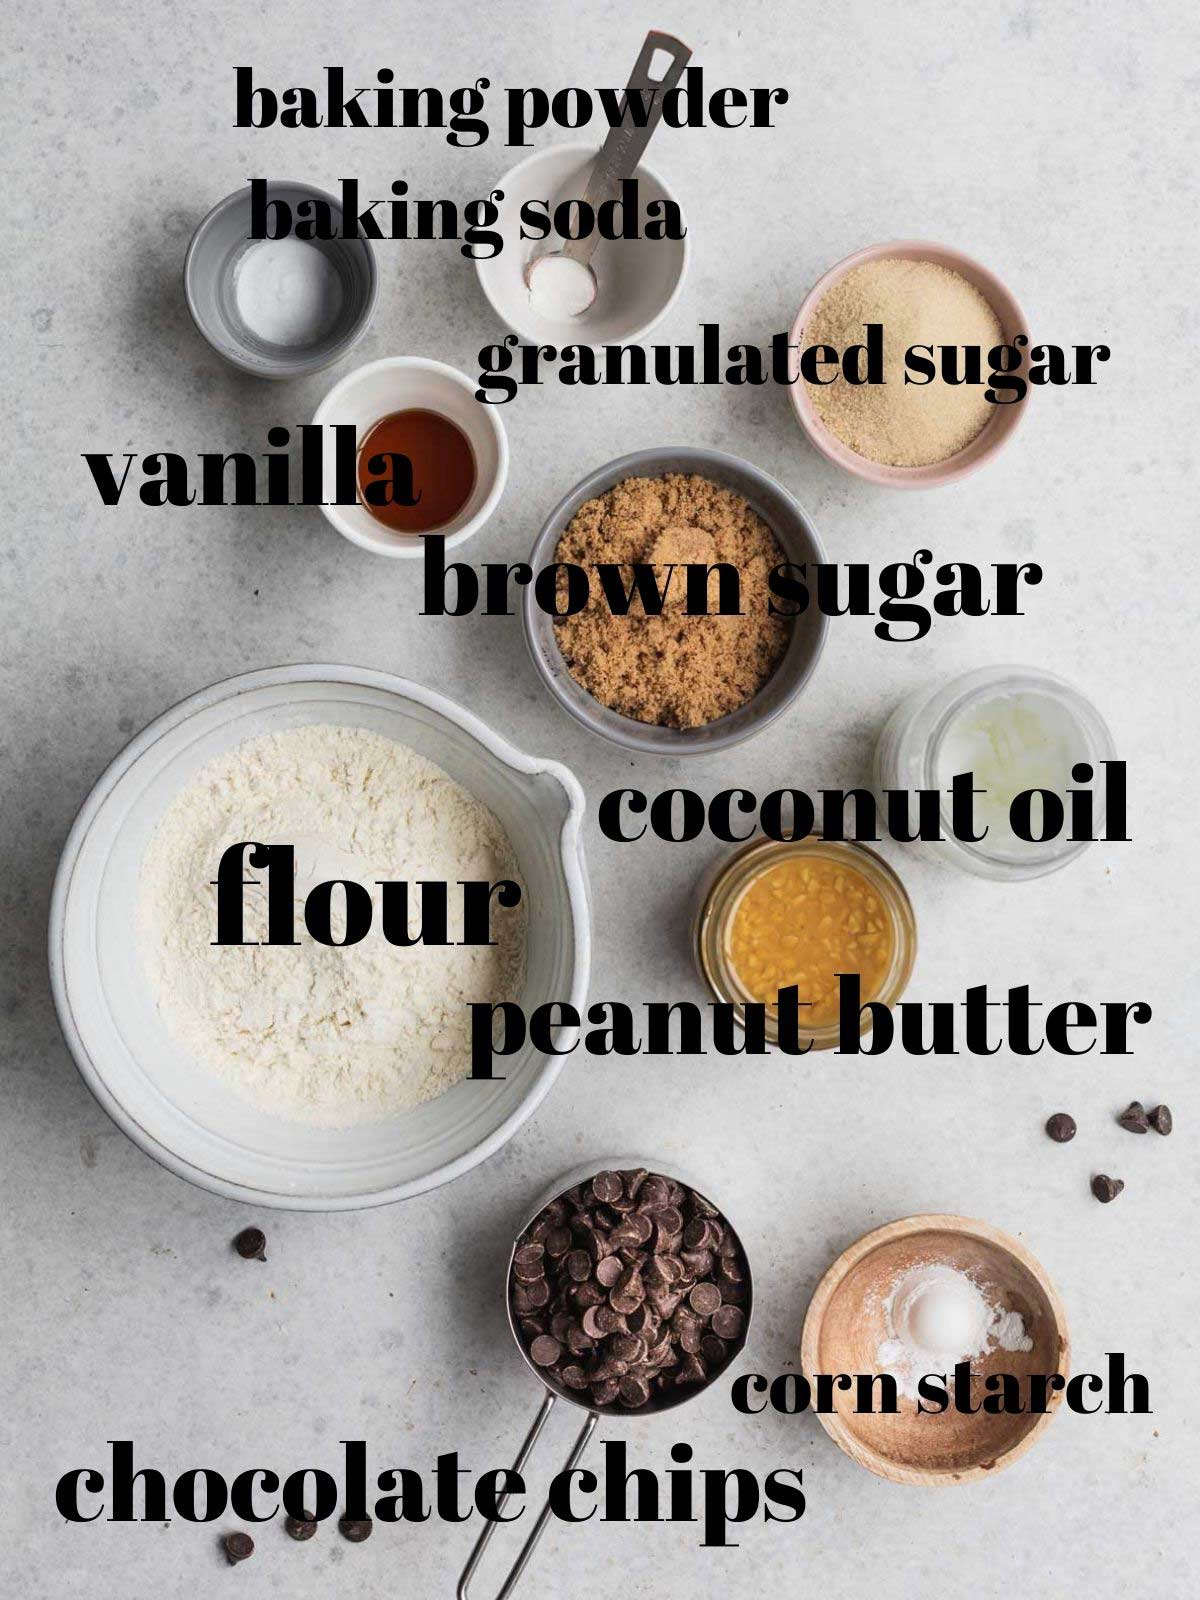 Peanut Butter cookie ingredients with labels.